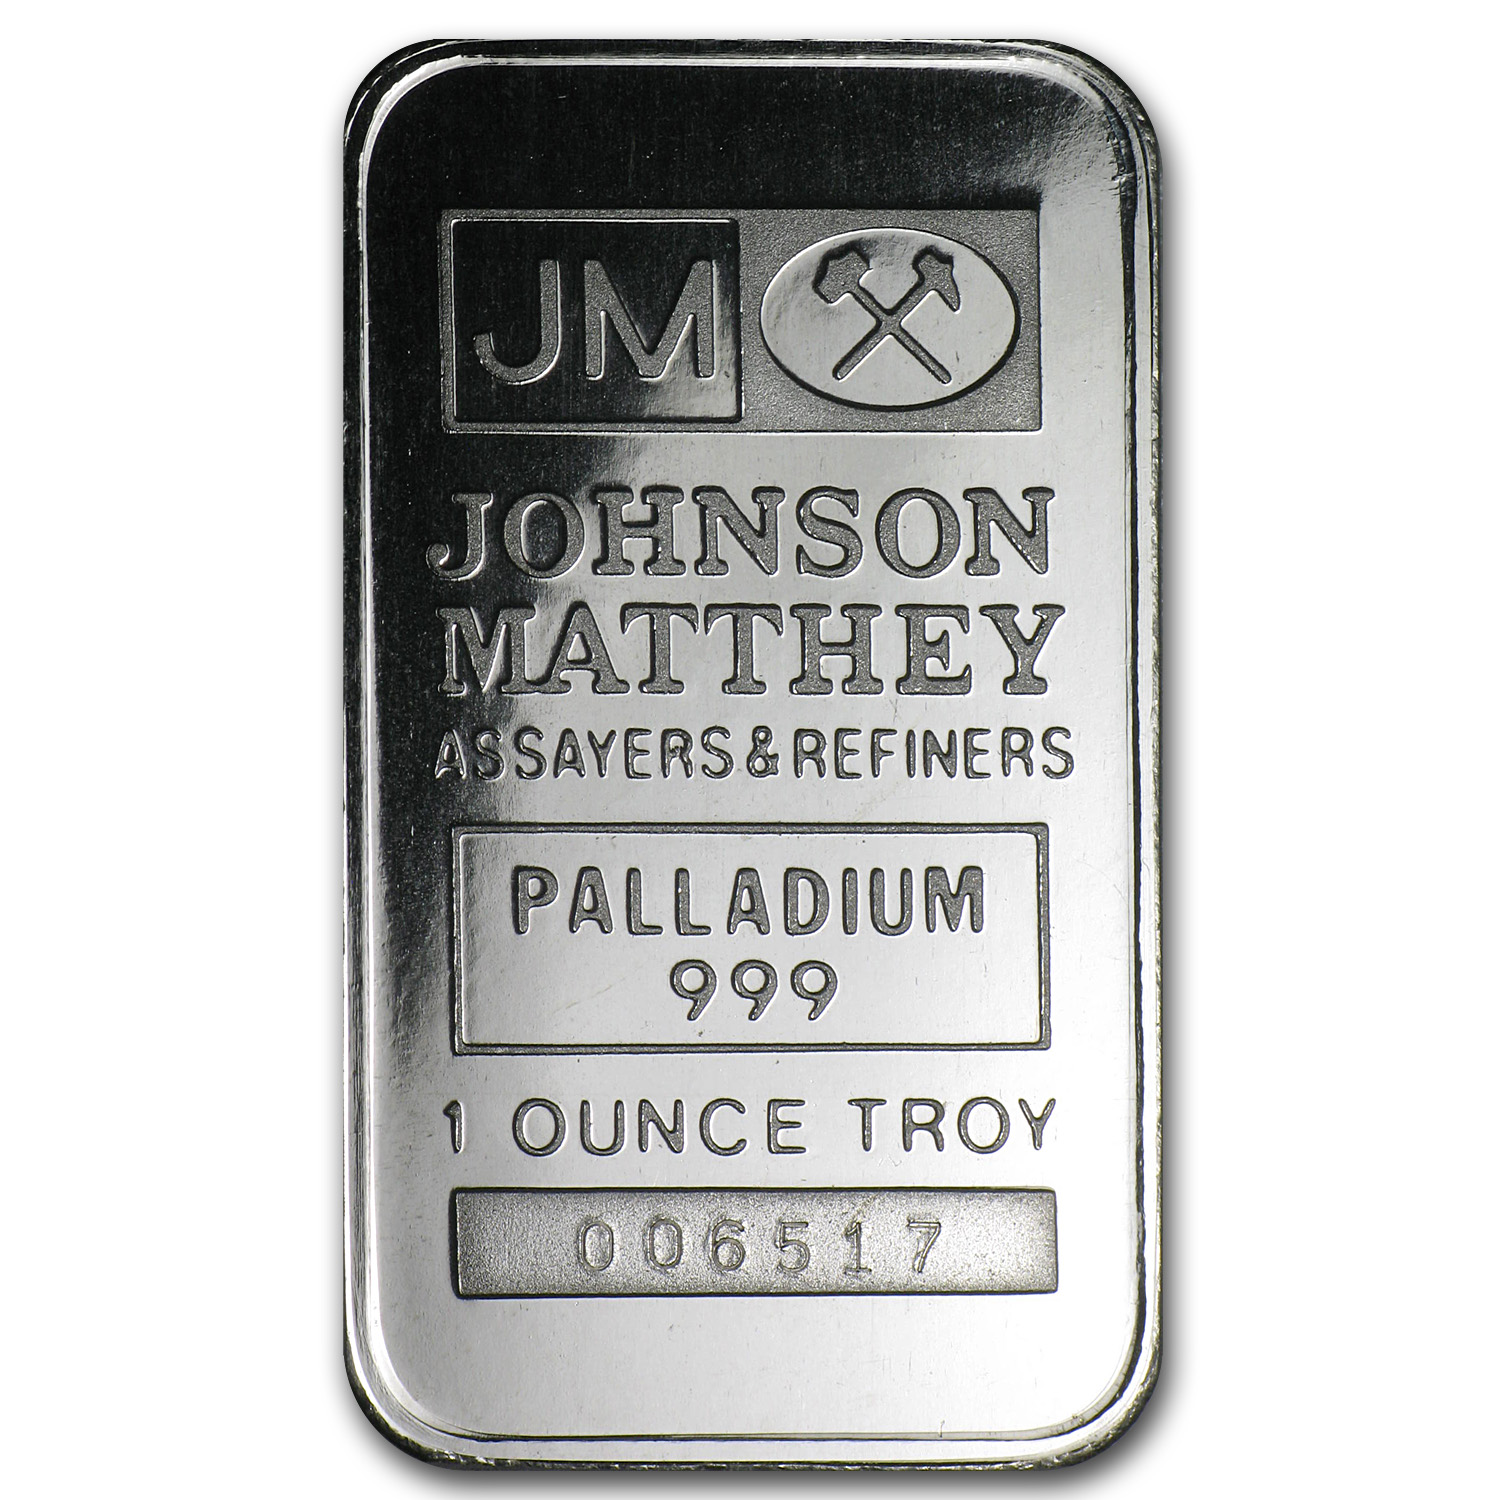 1 oz Palladium Bar - Johnson Matthey (No Assay)